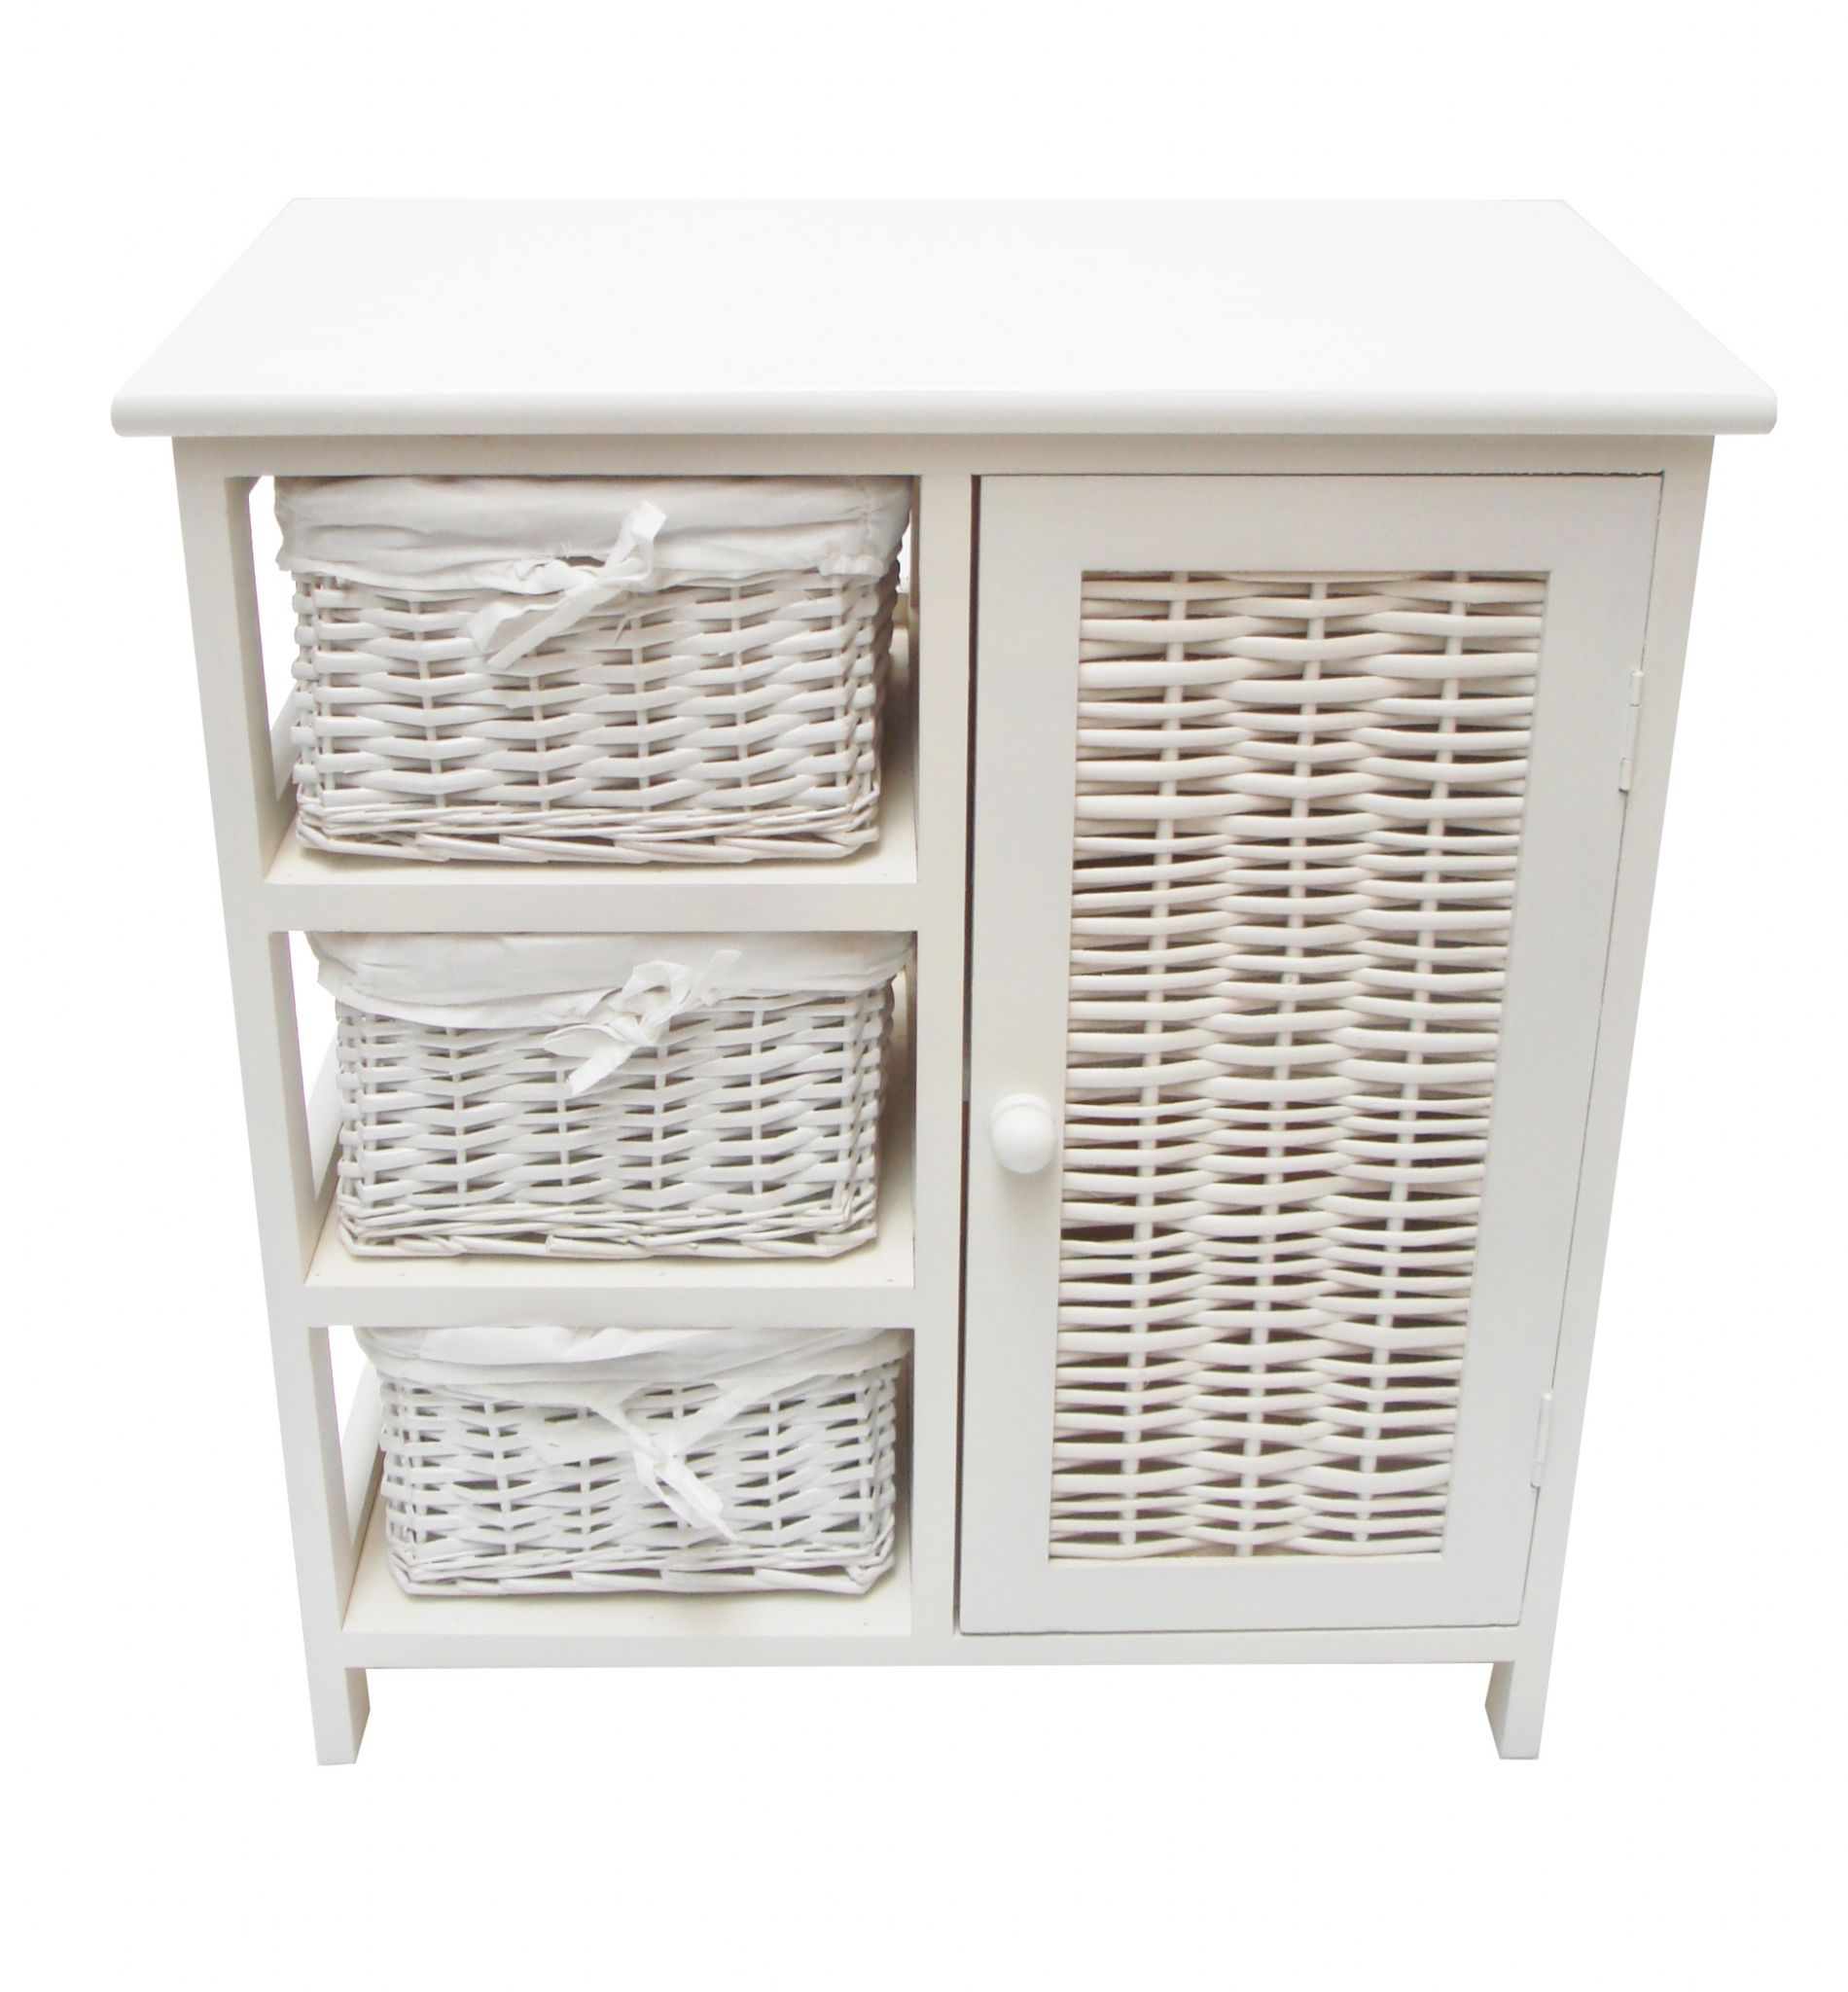 3 Chest Of Drawers With Cupboard Bedside Table Bathroom Storage Unit Cabinet Rcup2hez W